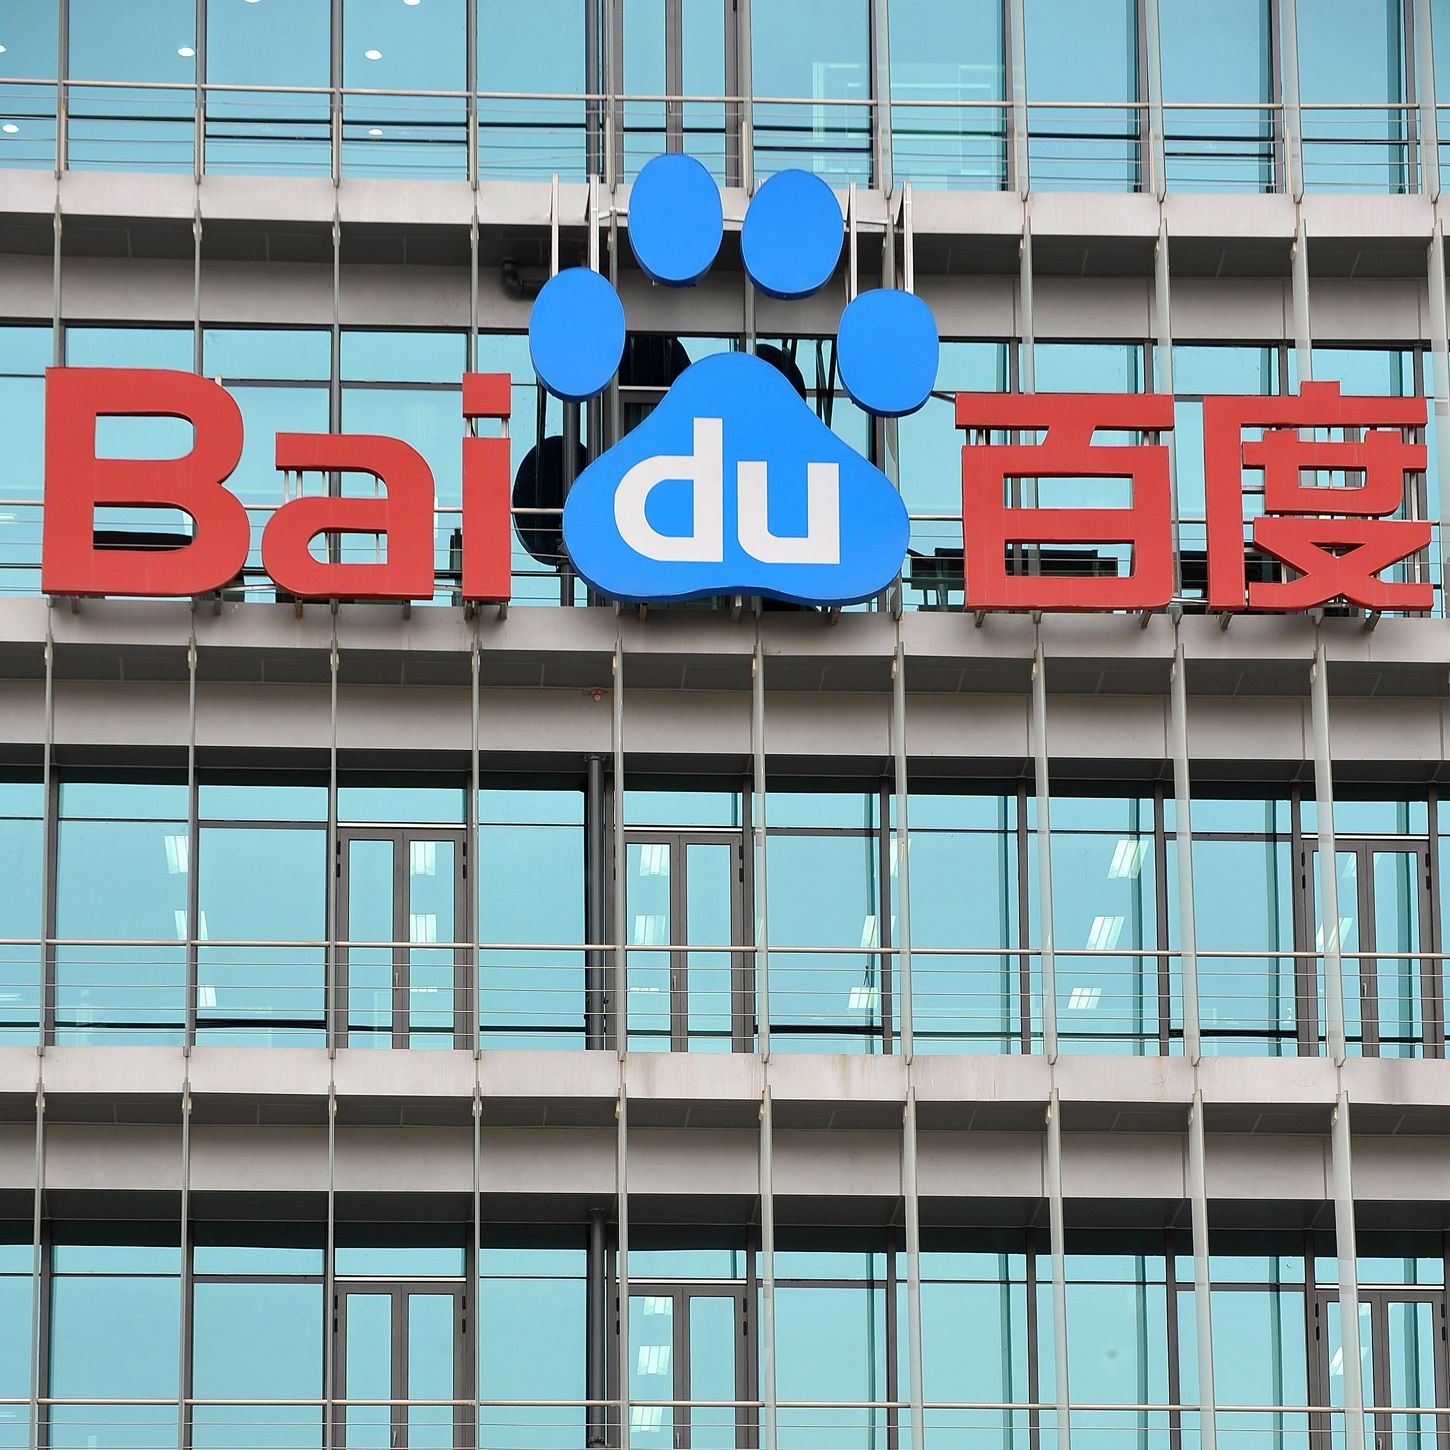 US Judge Rules In Baidu's Favor, Allows Internet Censorship